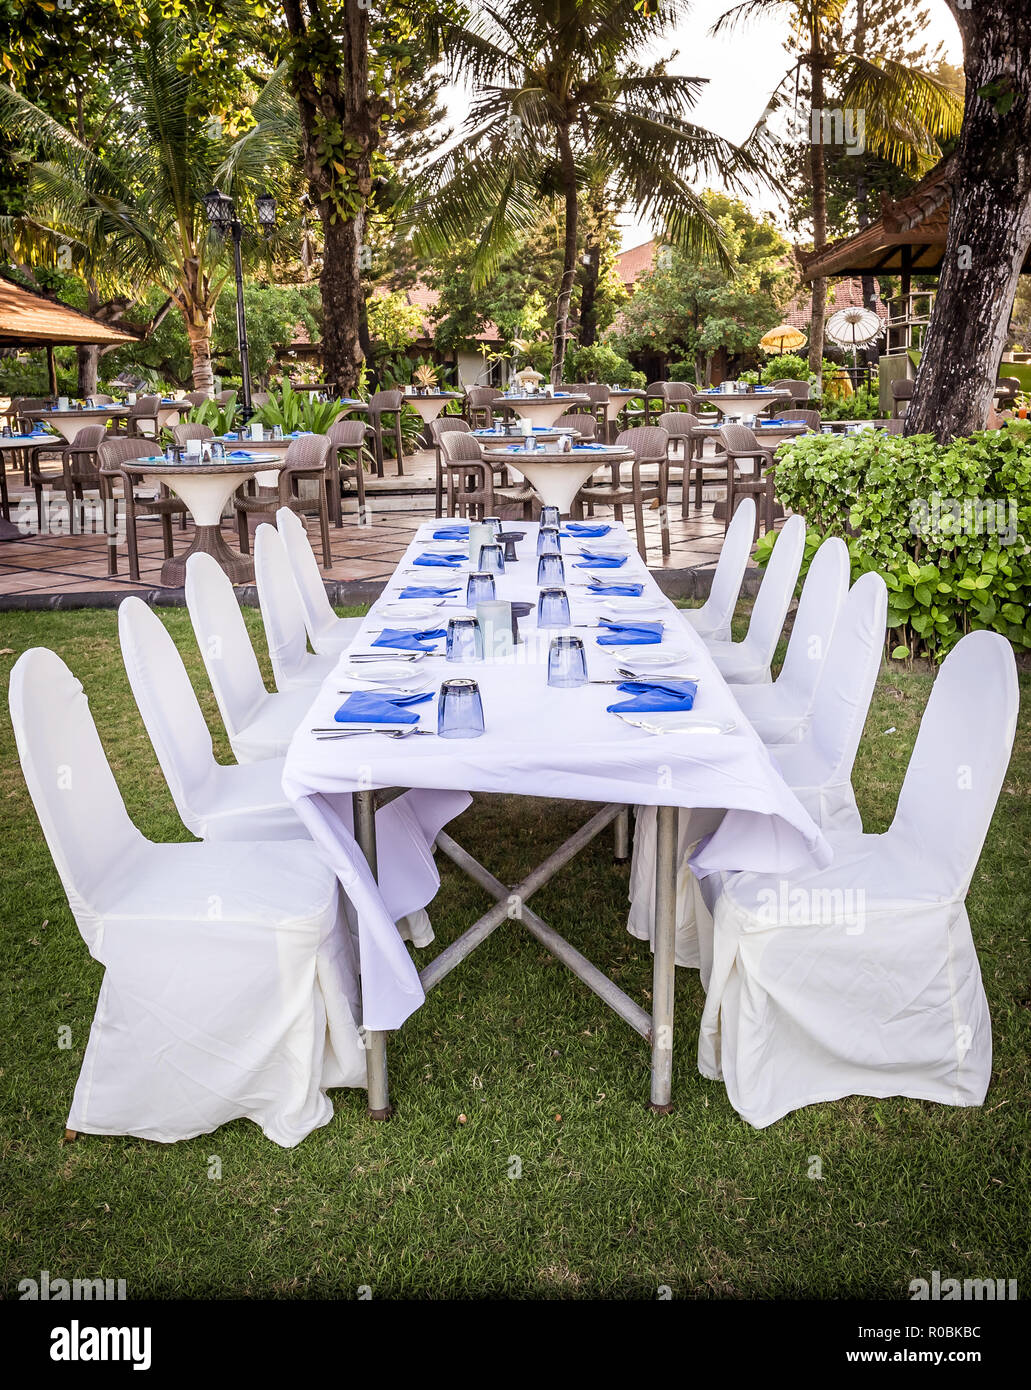 Chairs and tables prepared for garden party Stock Photo - Alamy